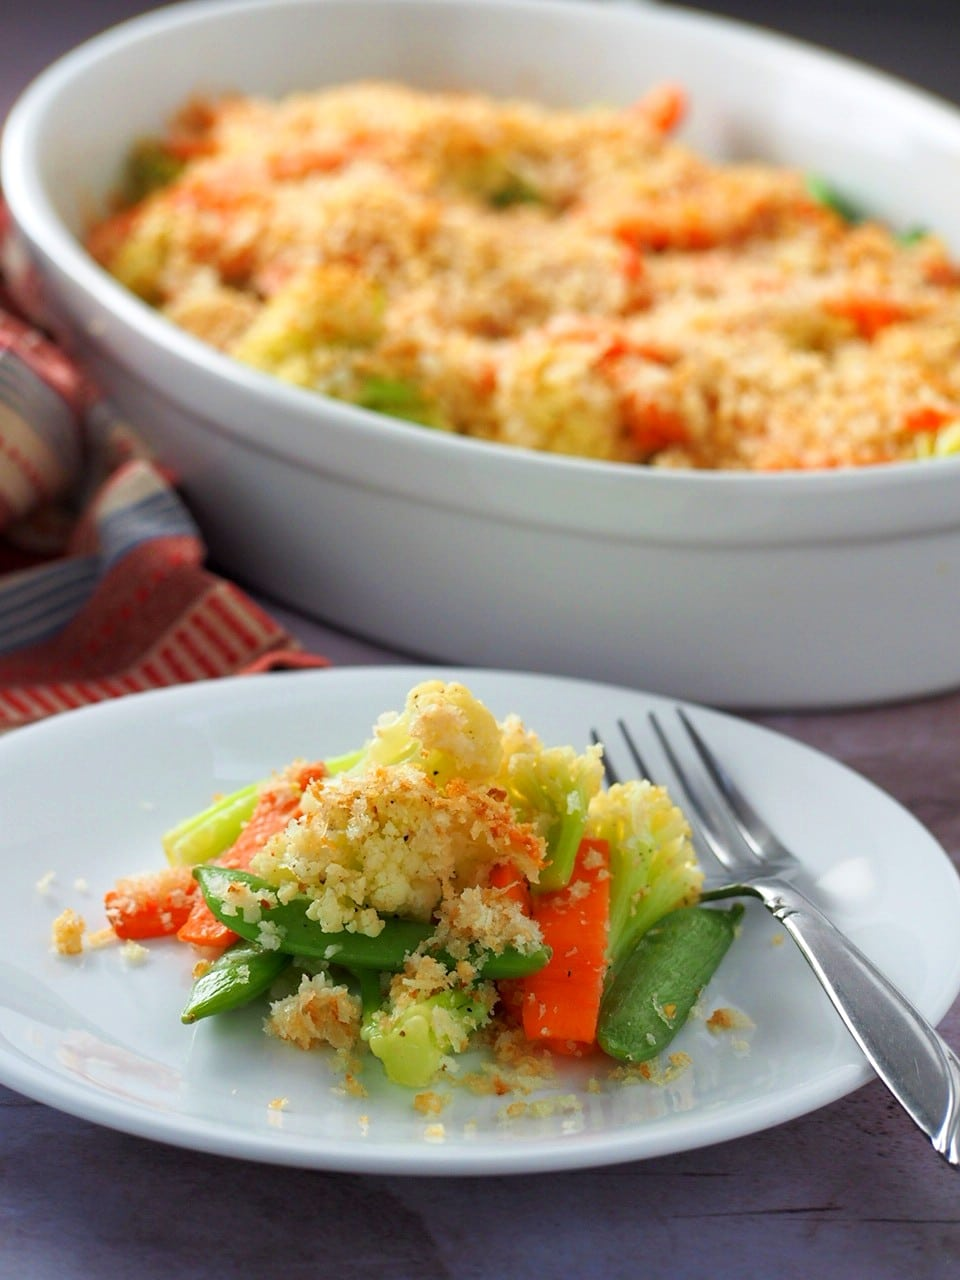 A serving of Easy Veggies Crunch on a plate.